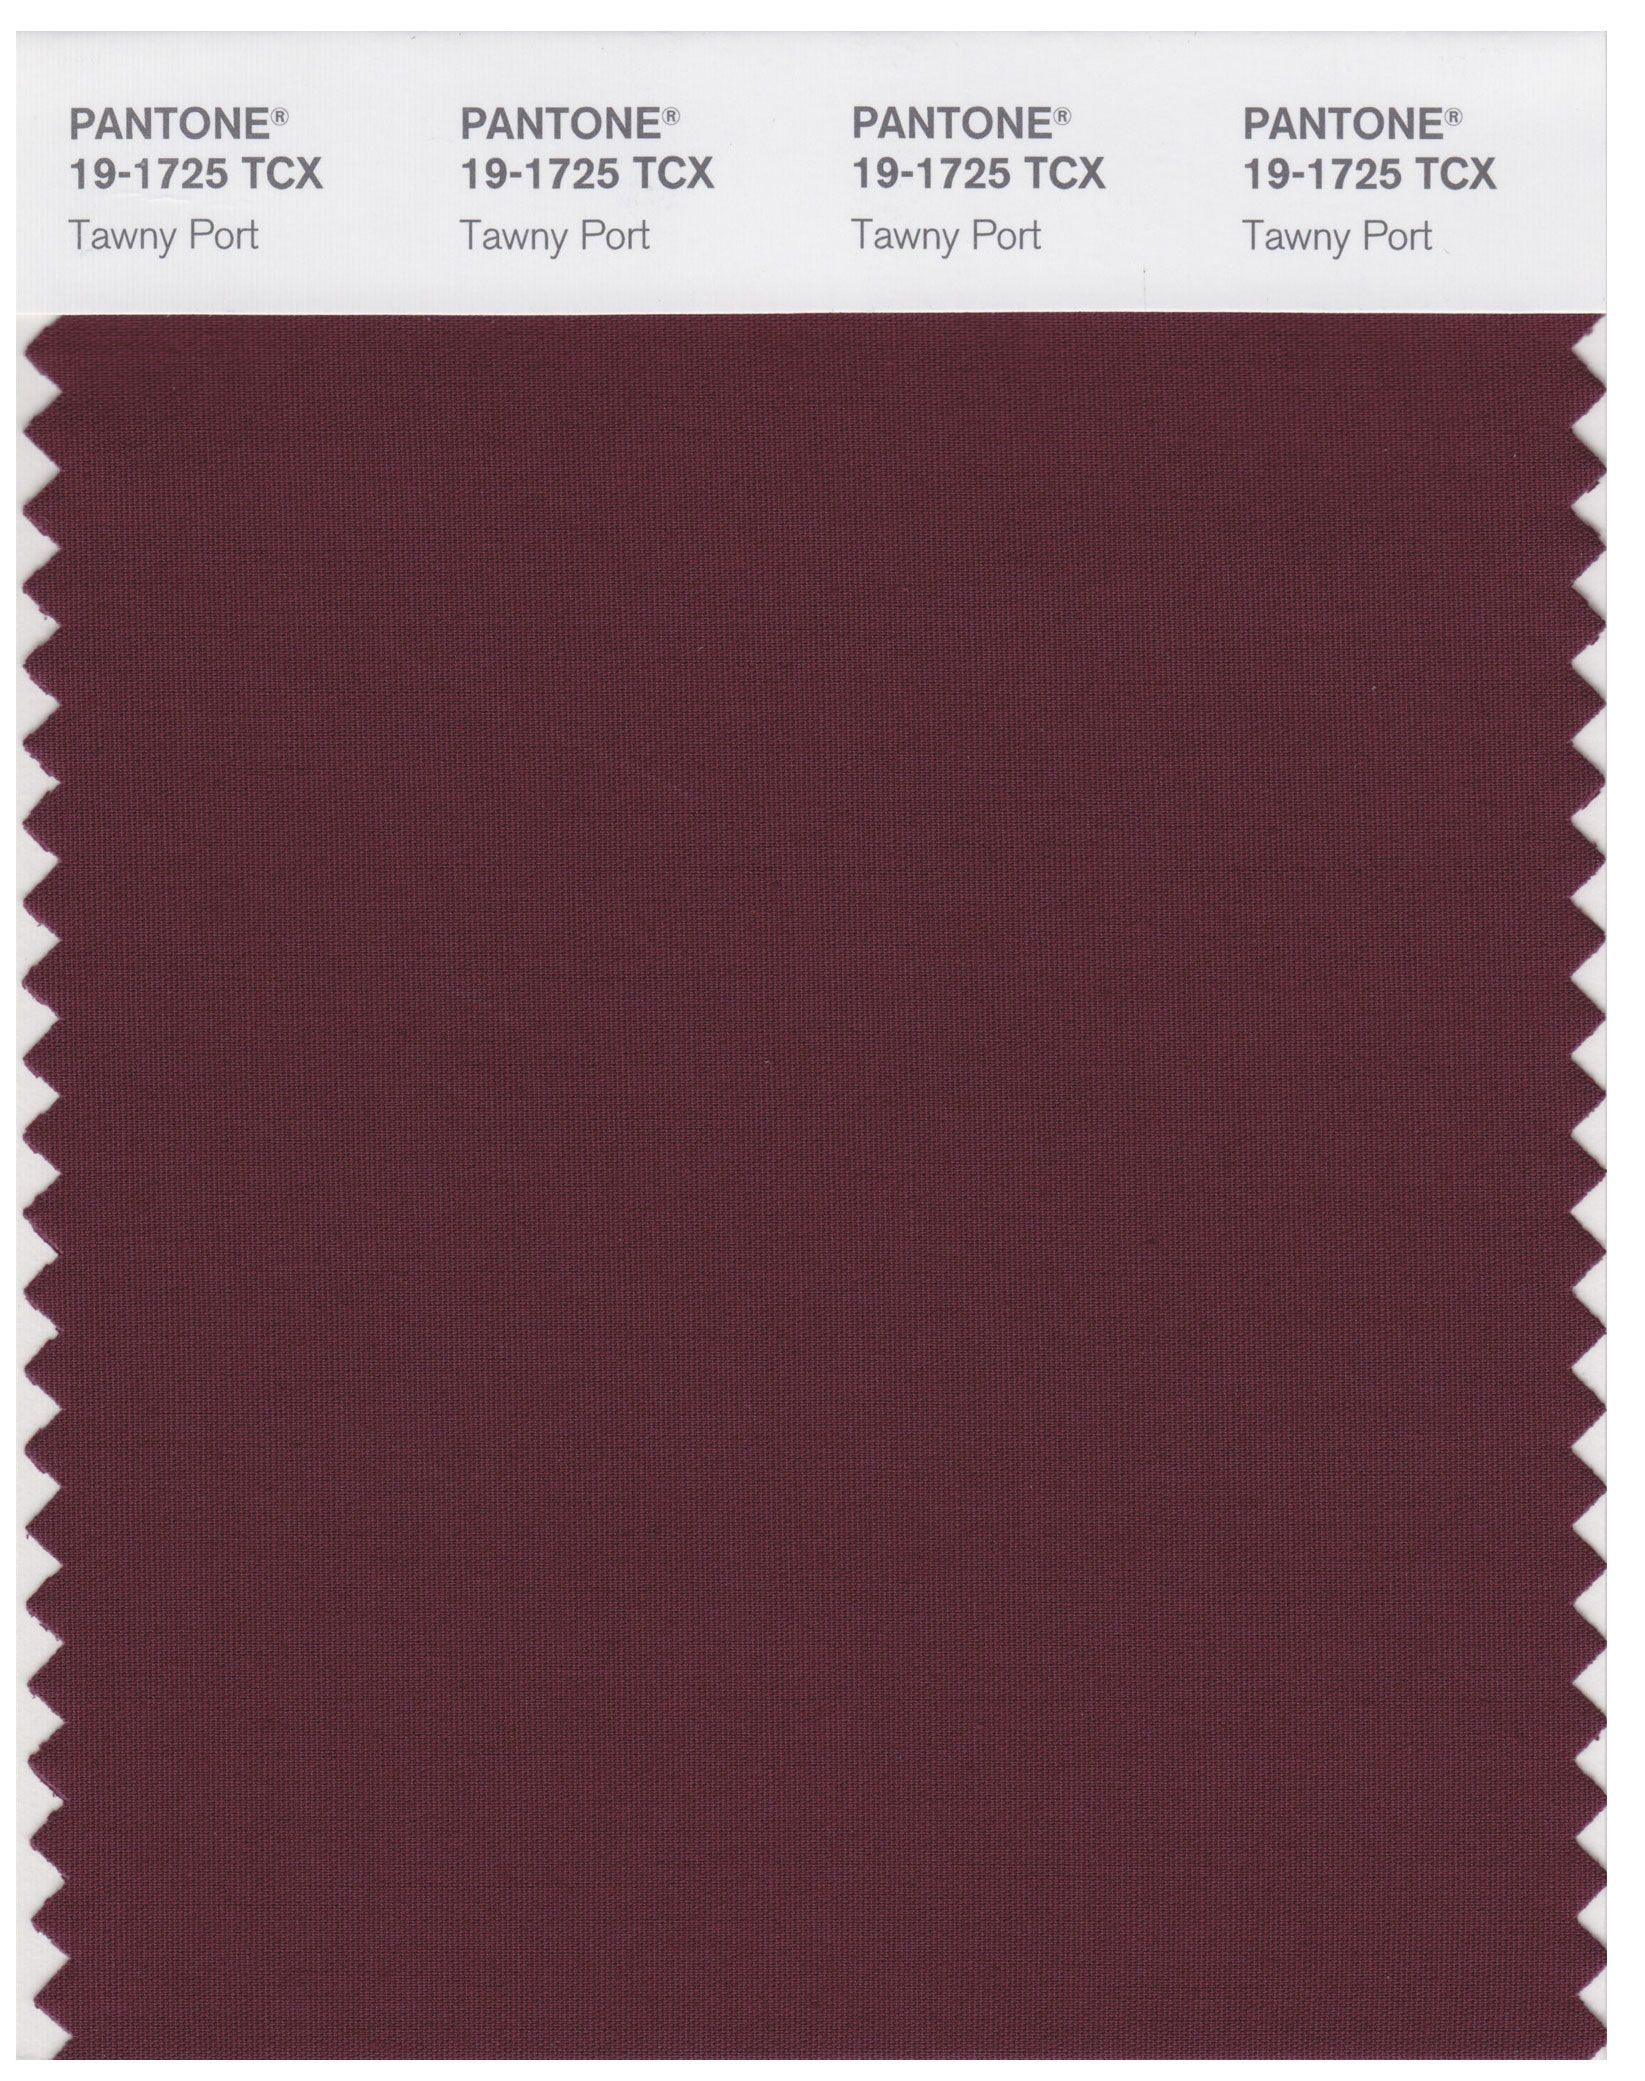 Pantone Smart 19 1725 Tcx Color Swatch Card - Tawny Port